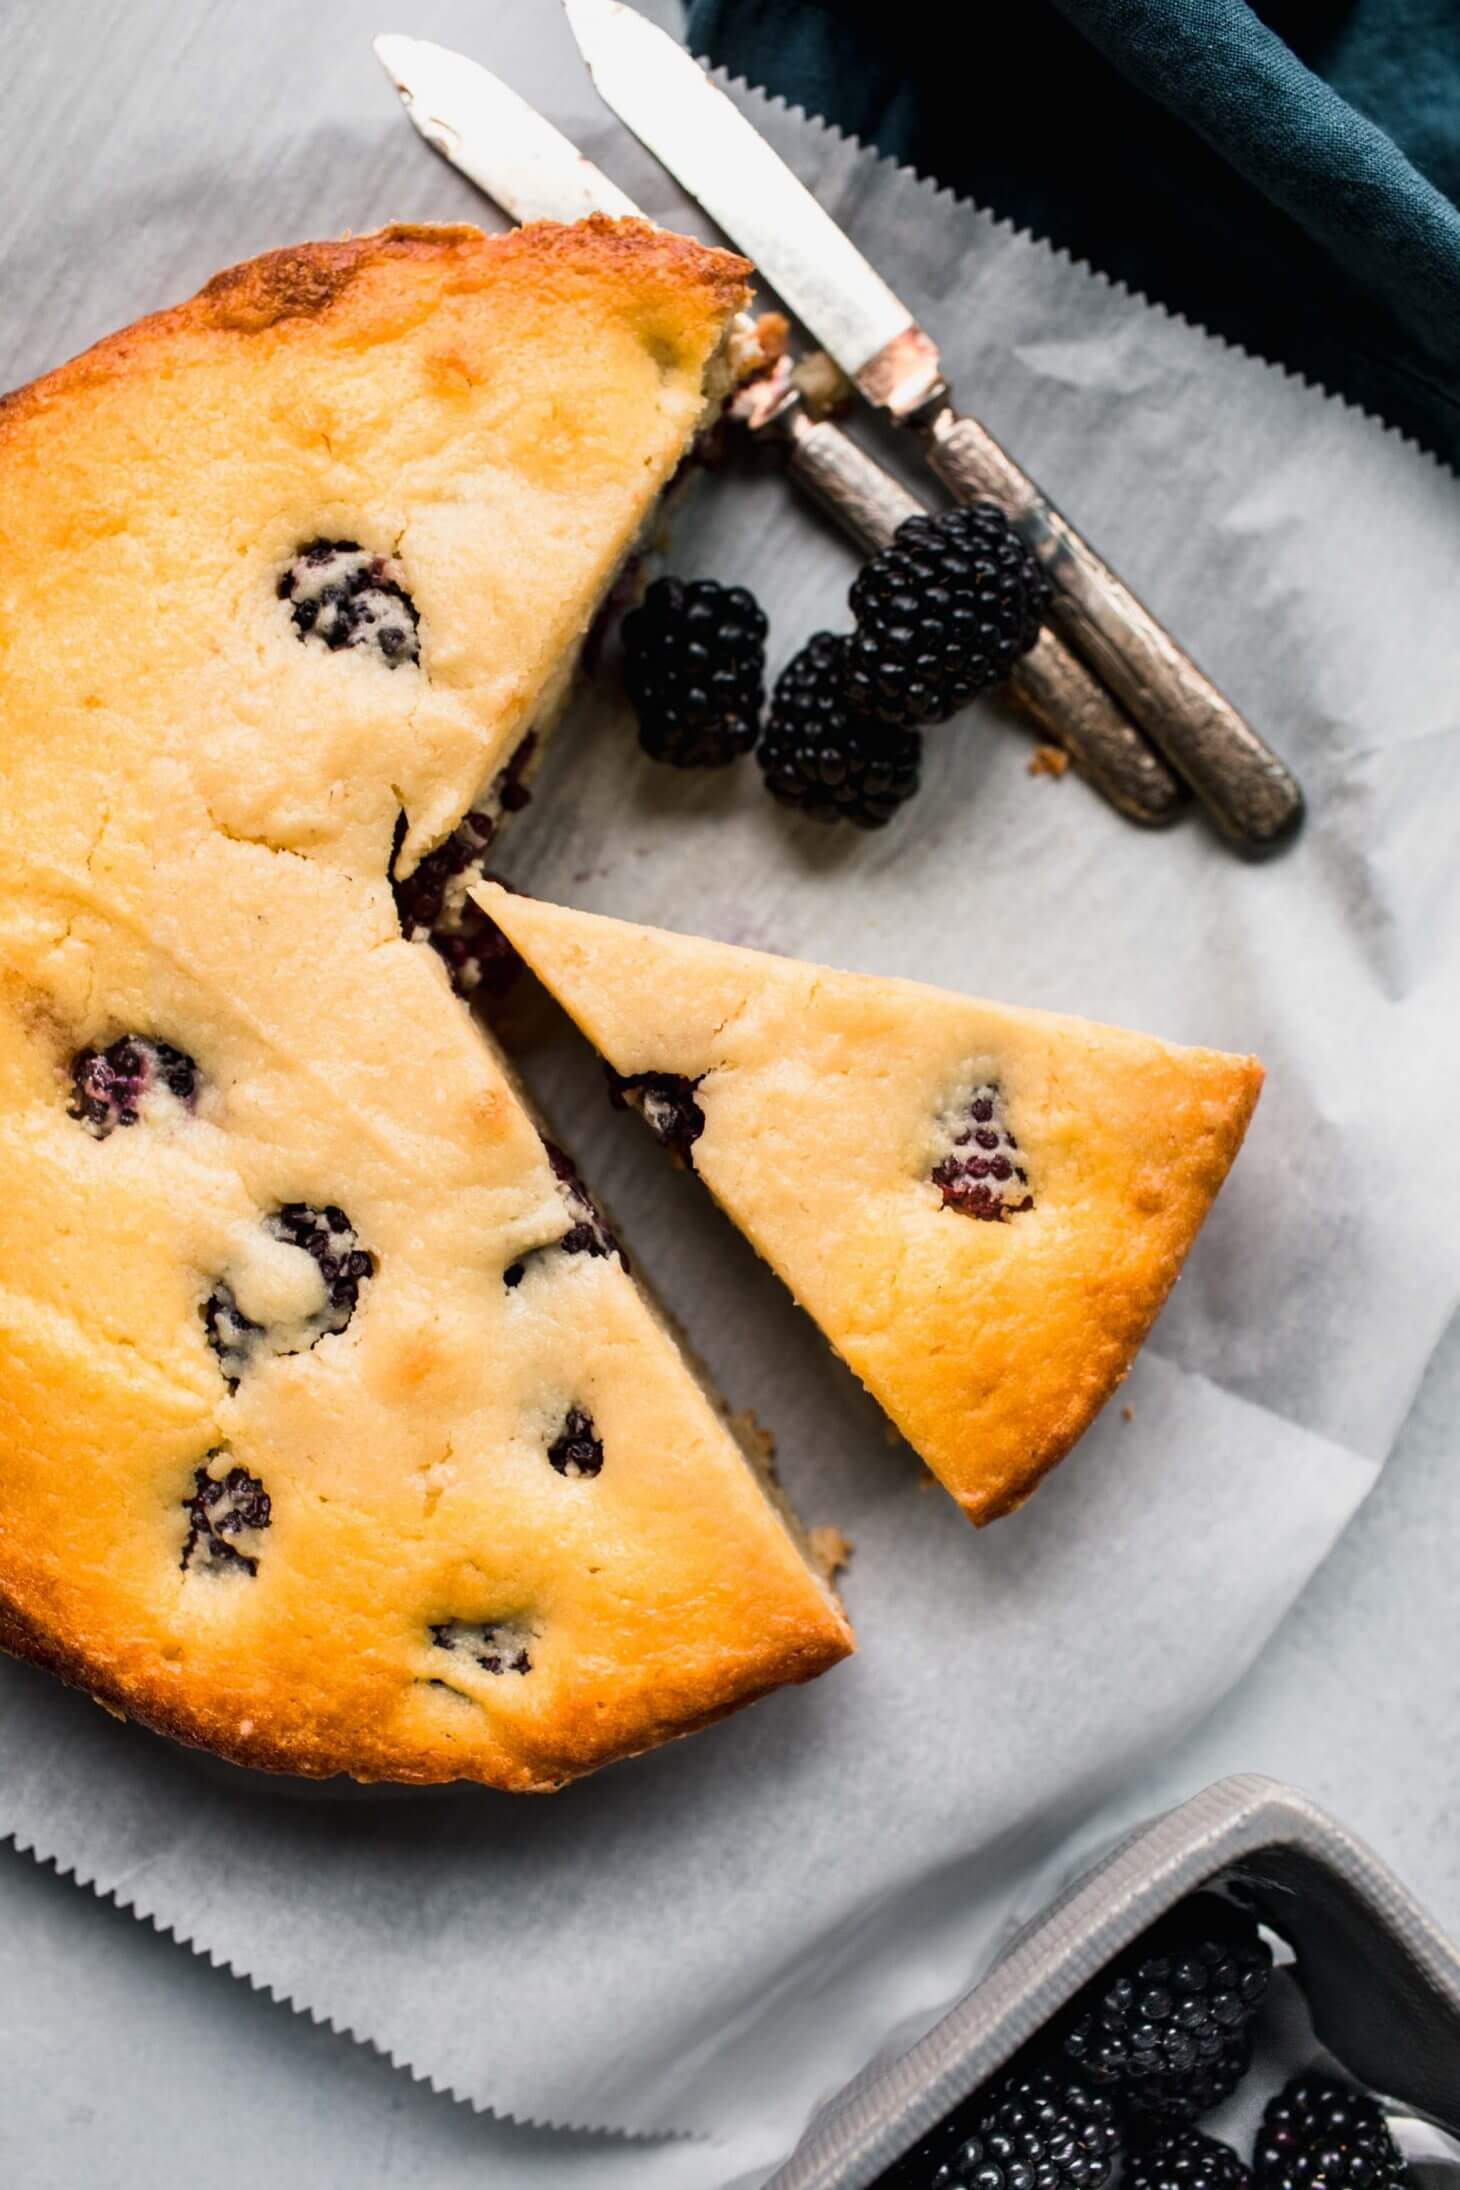 Ricotta cake cut into pieces next to blackberries.